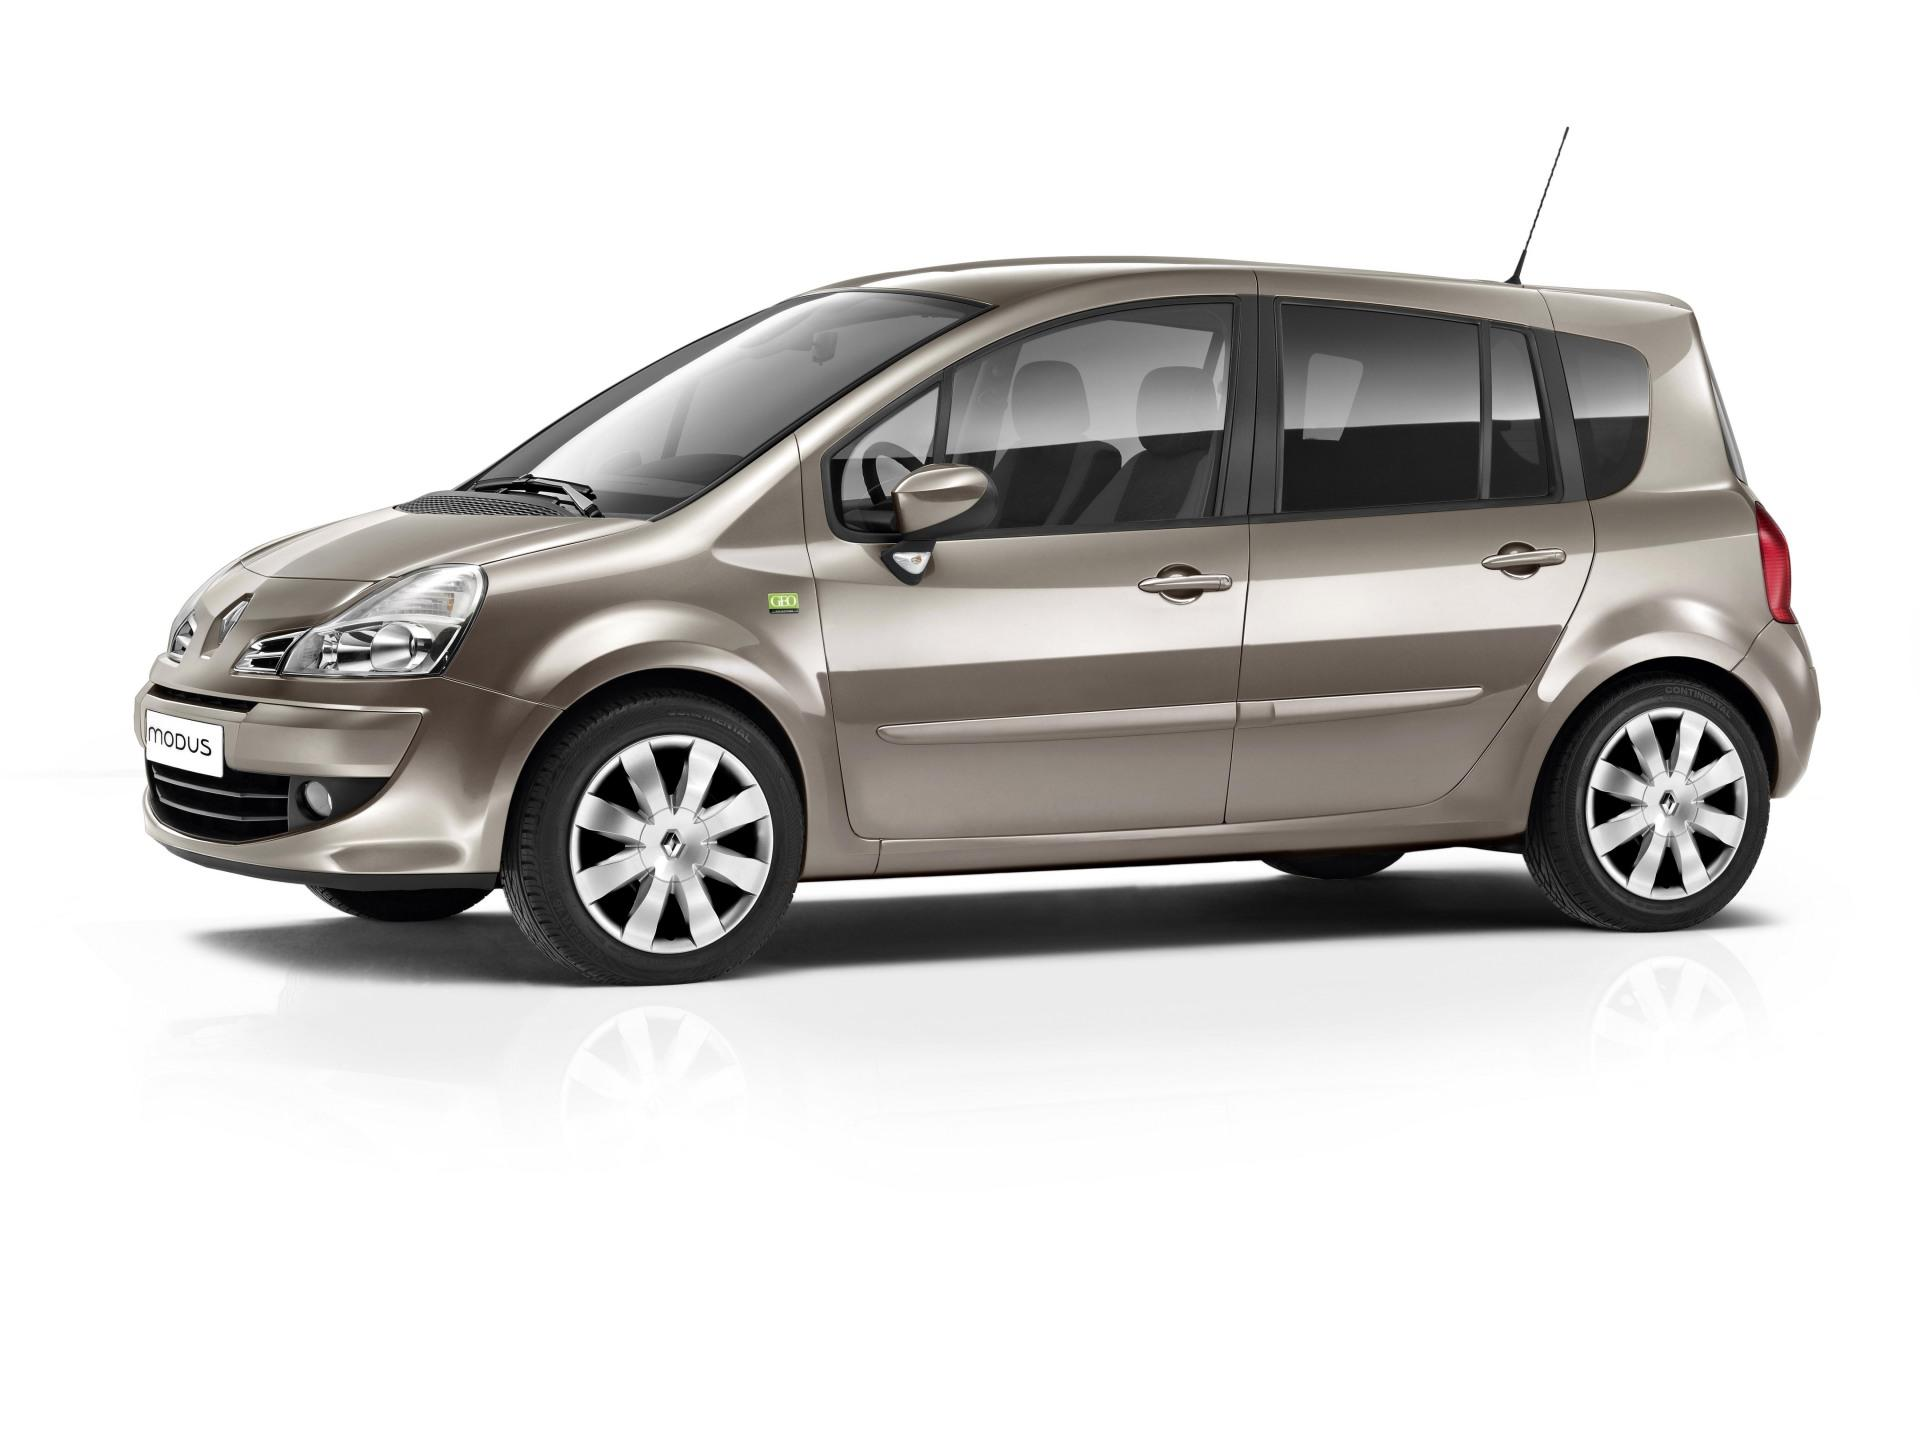 Dodge Car 2012 >> 2010 Renault Grand Modus GEO Collection News and Information